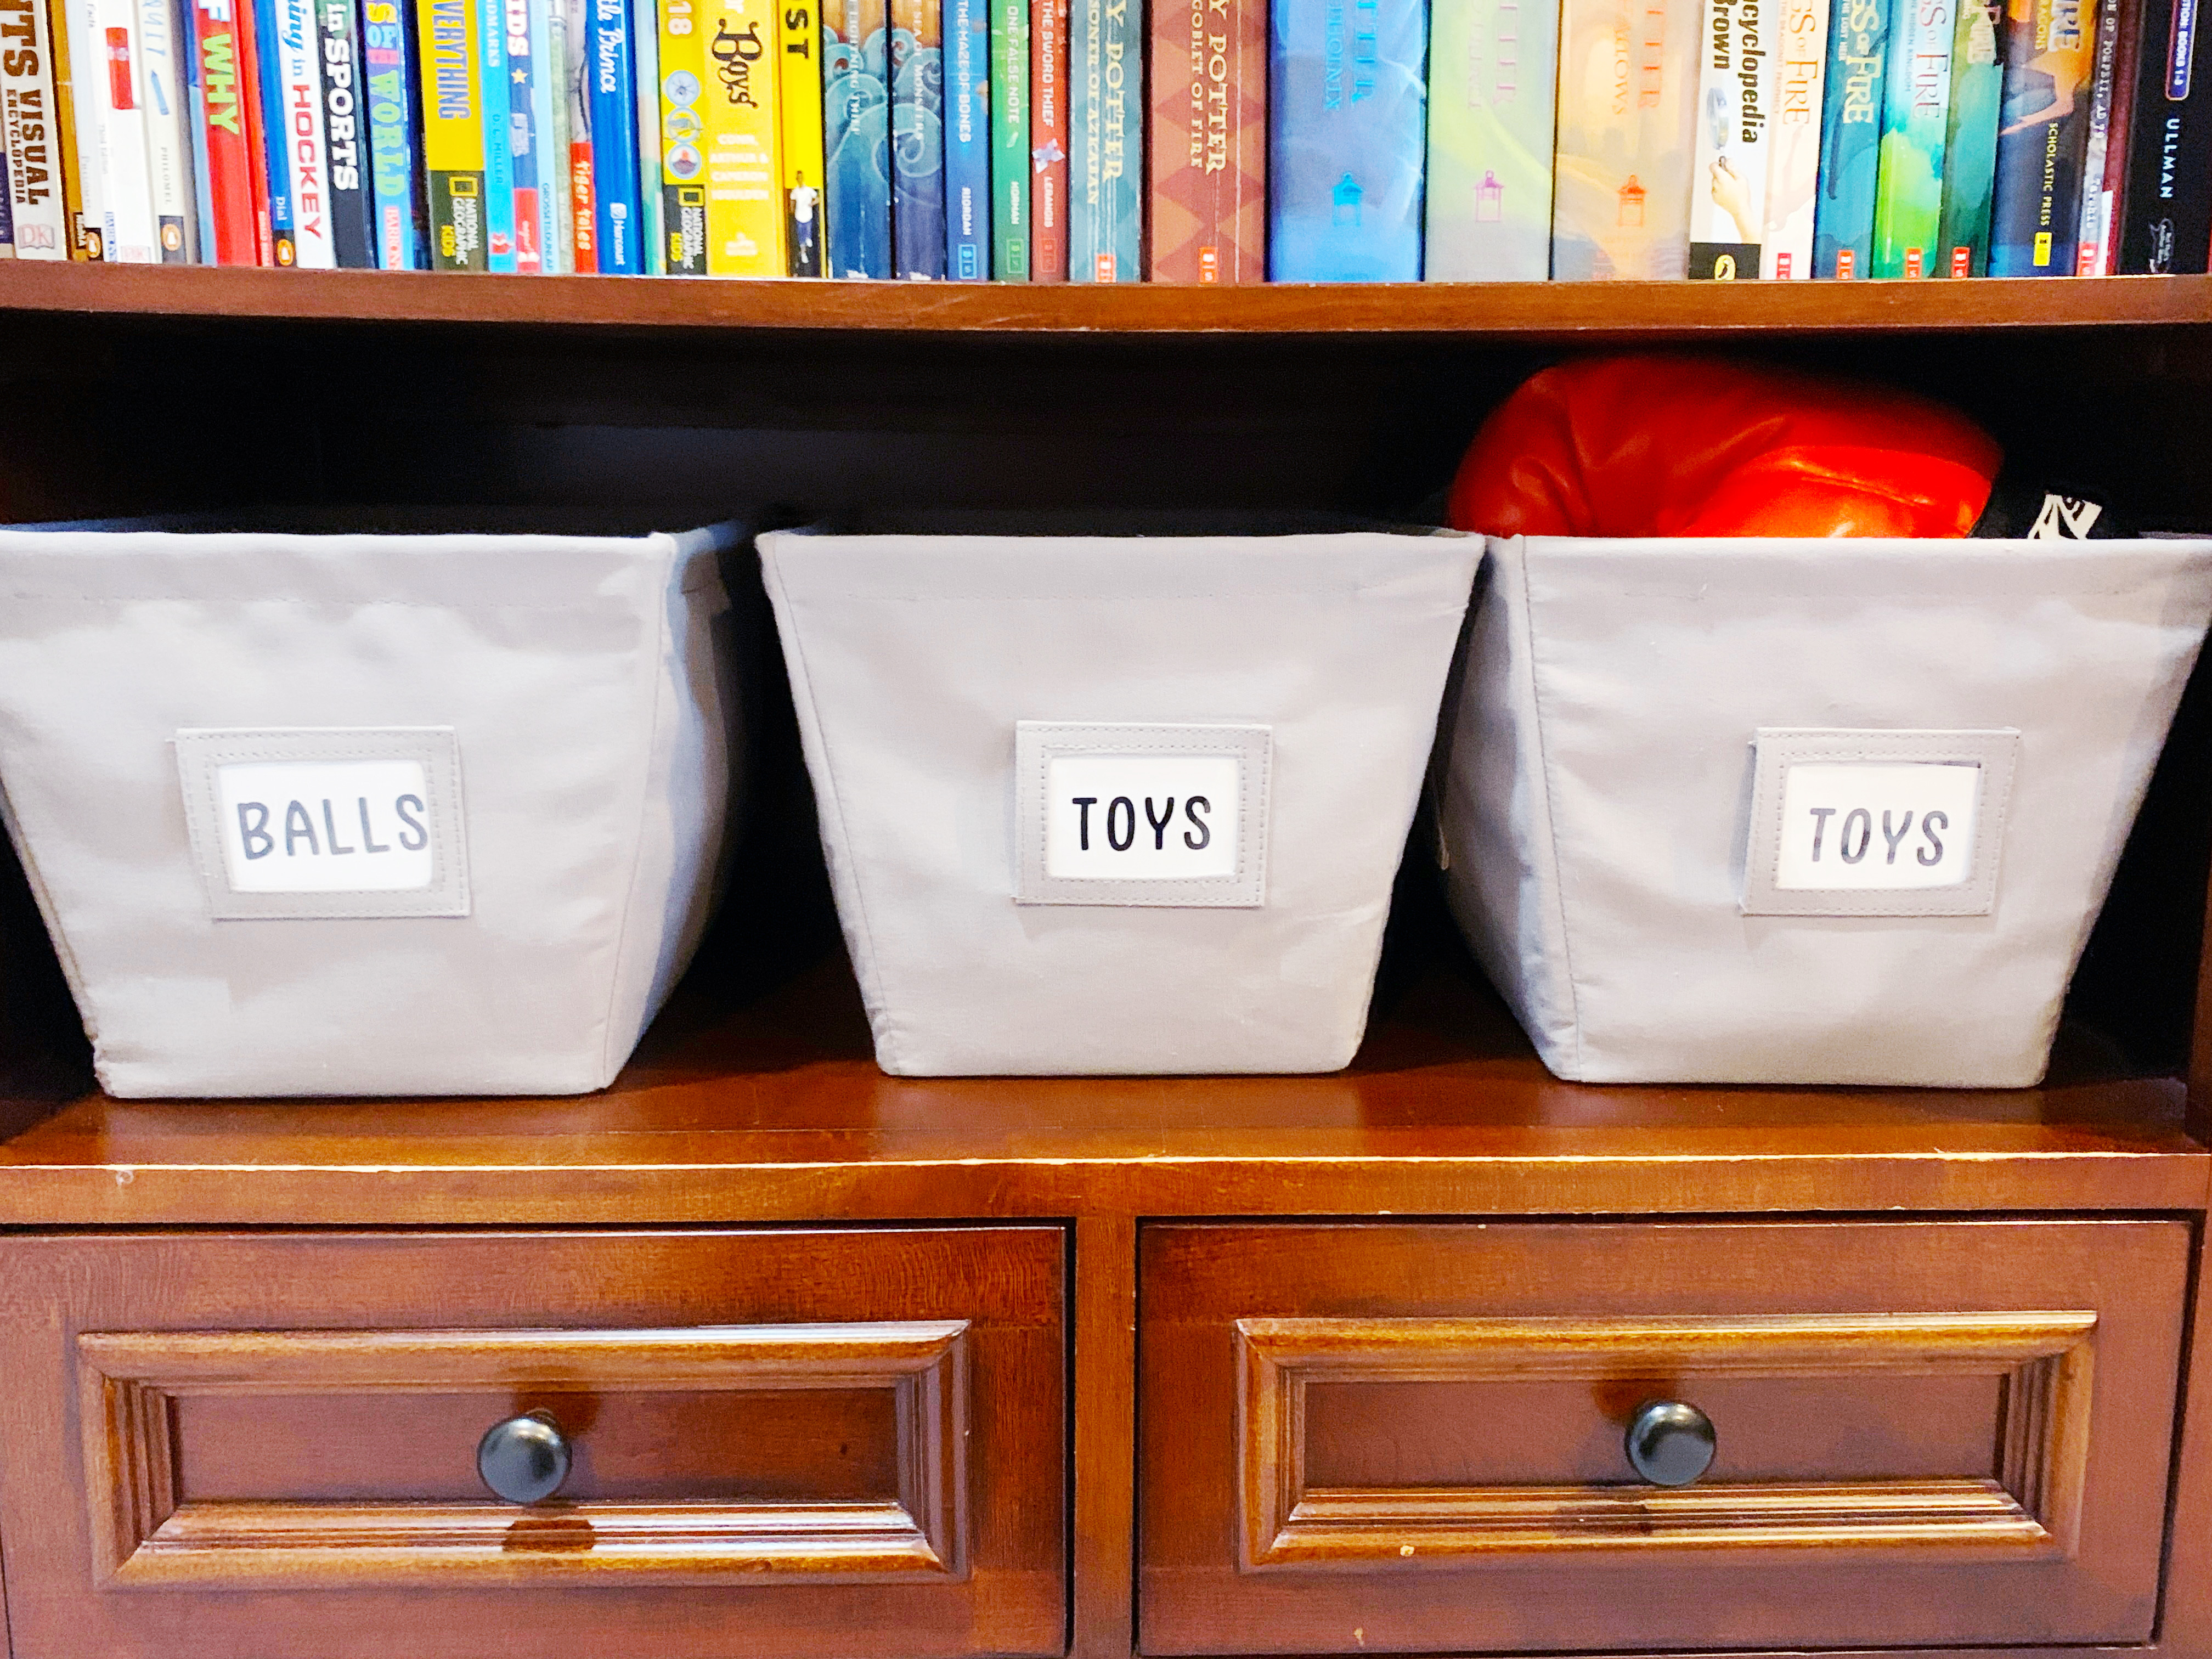 Large Grey Open Canvas Storage Bins with ball, toy and more Labels